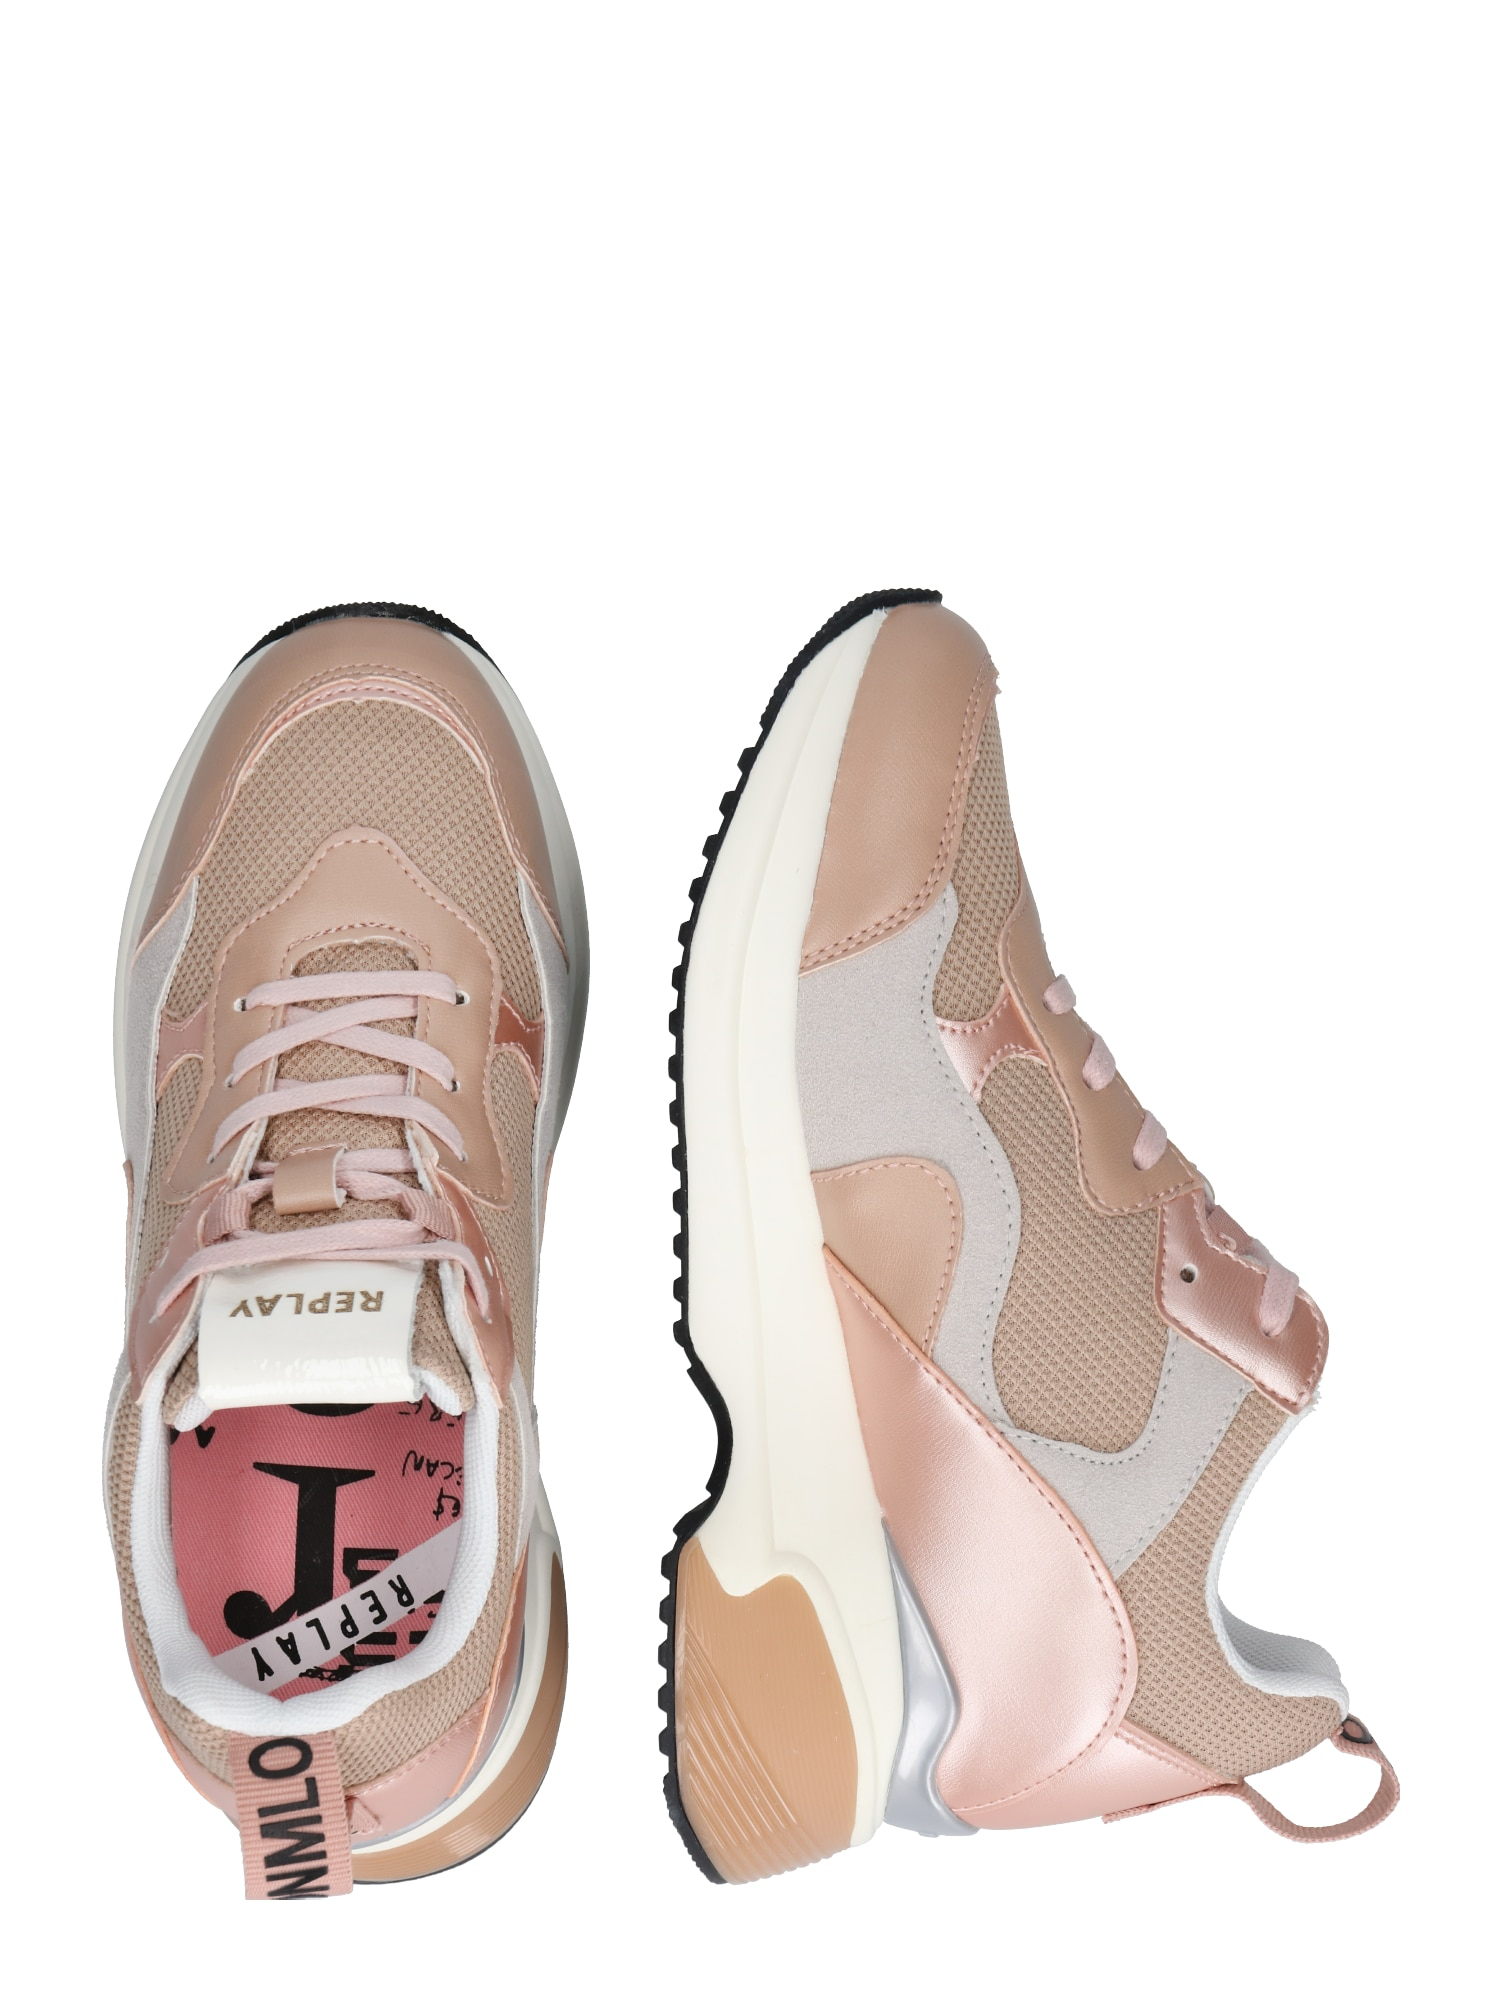 REPLAY, Damen Sneakers laag THEME, nude / rosa / wit